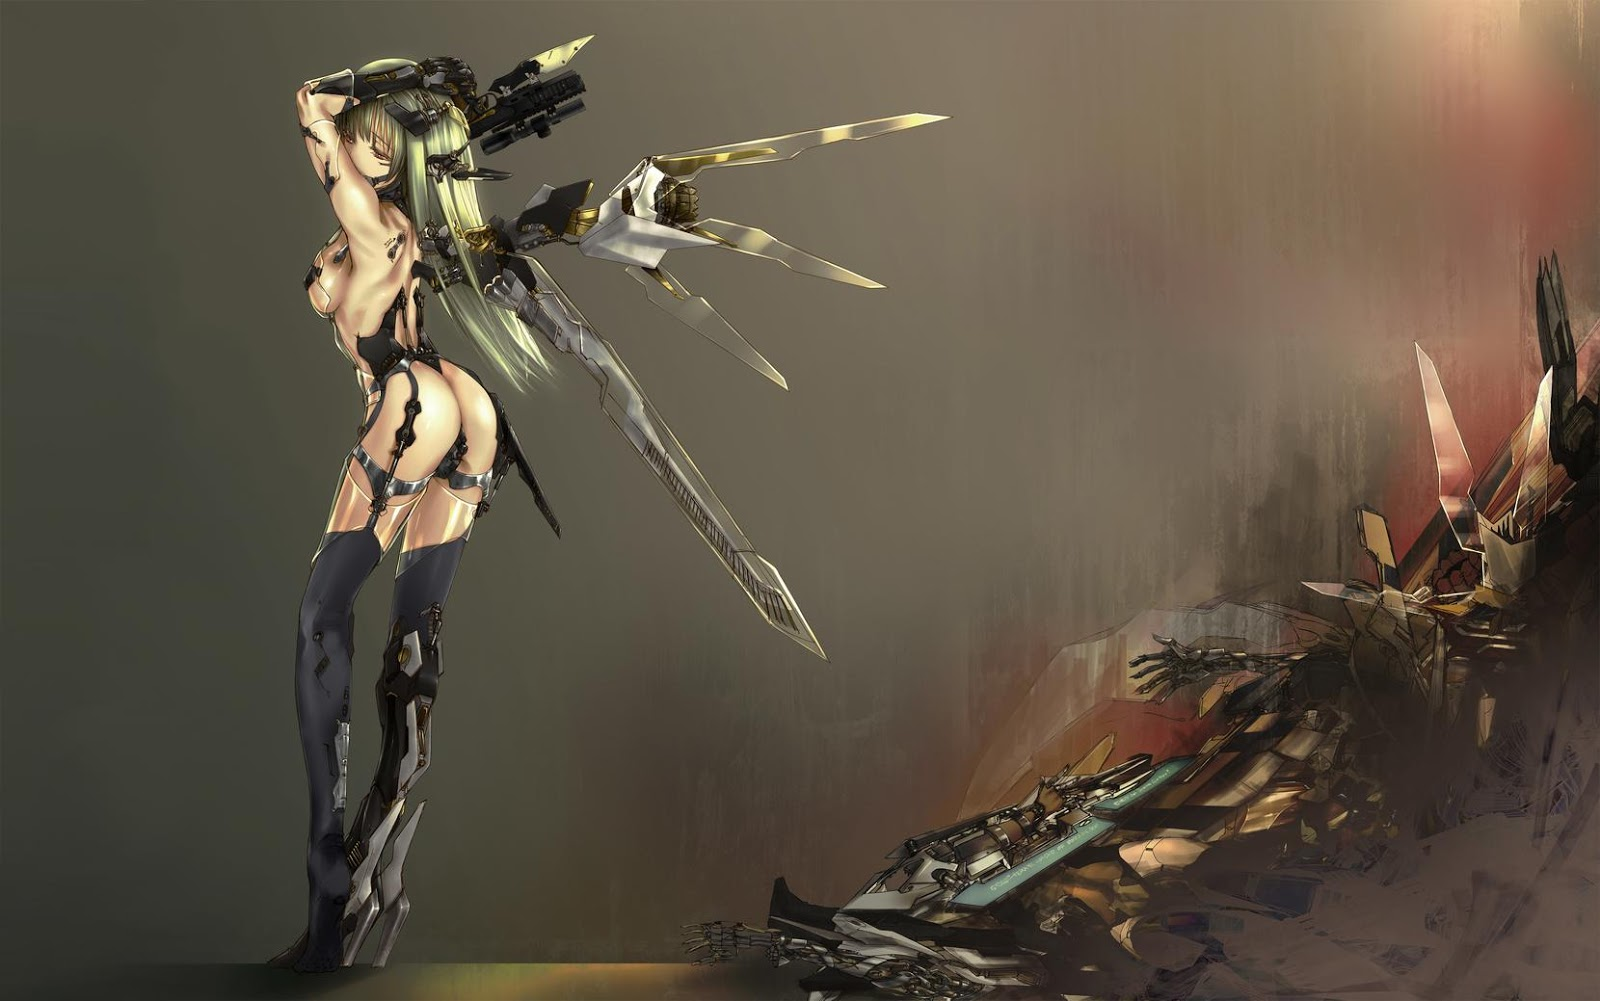 Anime Girl With Weapon Wallpapers